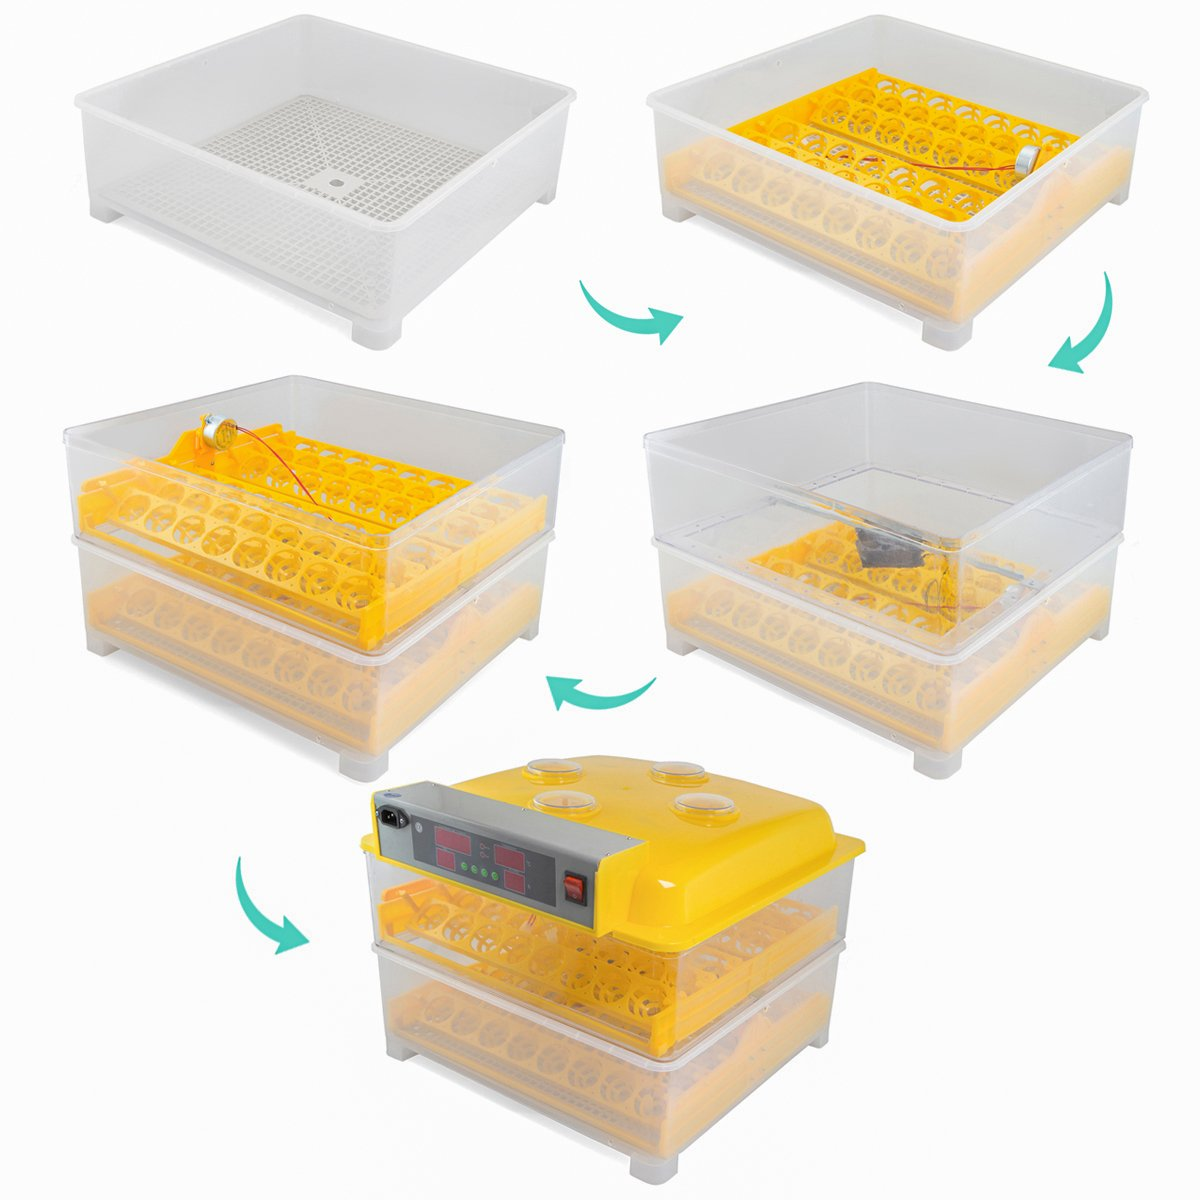 XtremepowerUS Egg Incubator 96 Eggs 2 Layer Digital Control Panel Poultry Hatcher Auto Egg Turner by XtremepowerUS (Image #2)